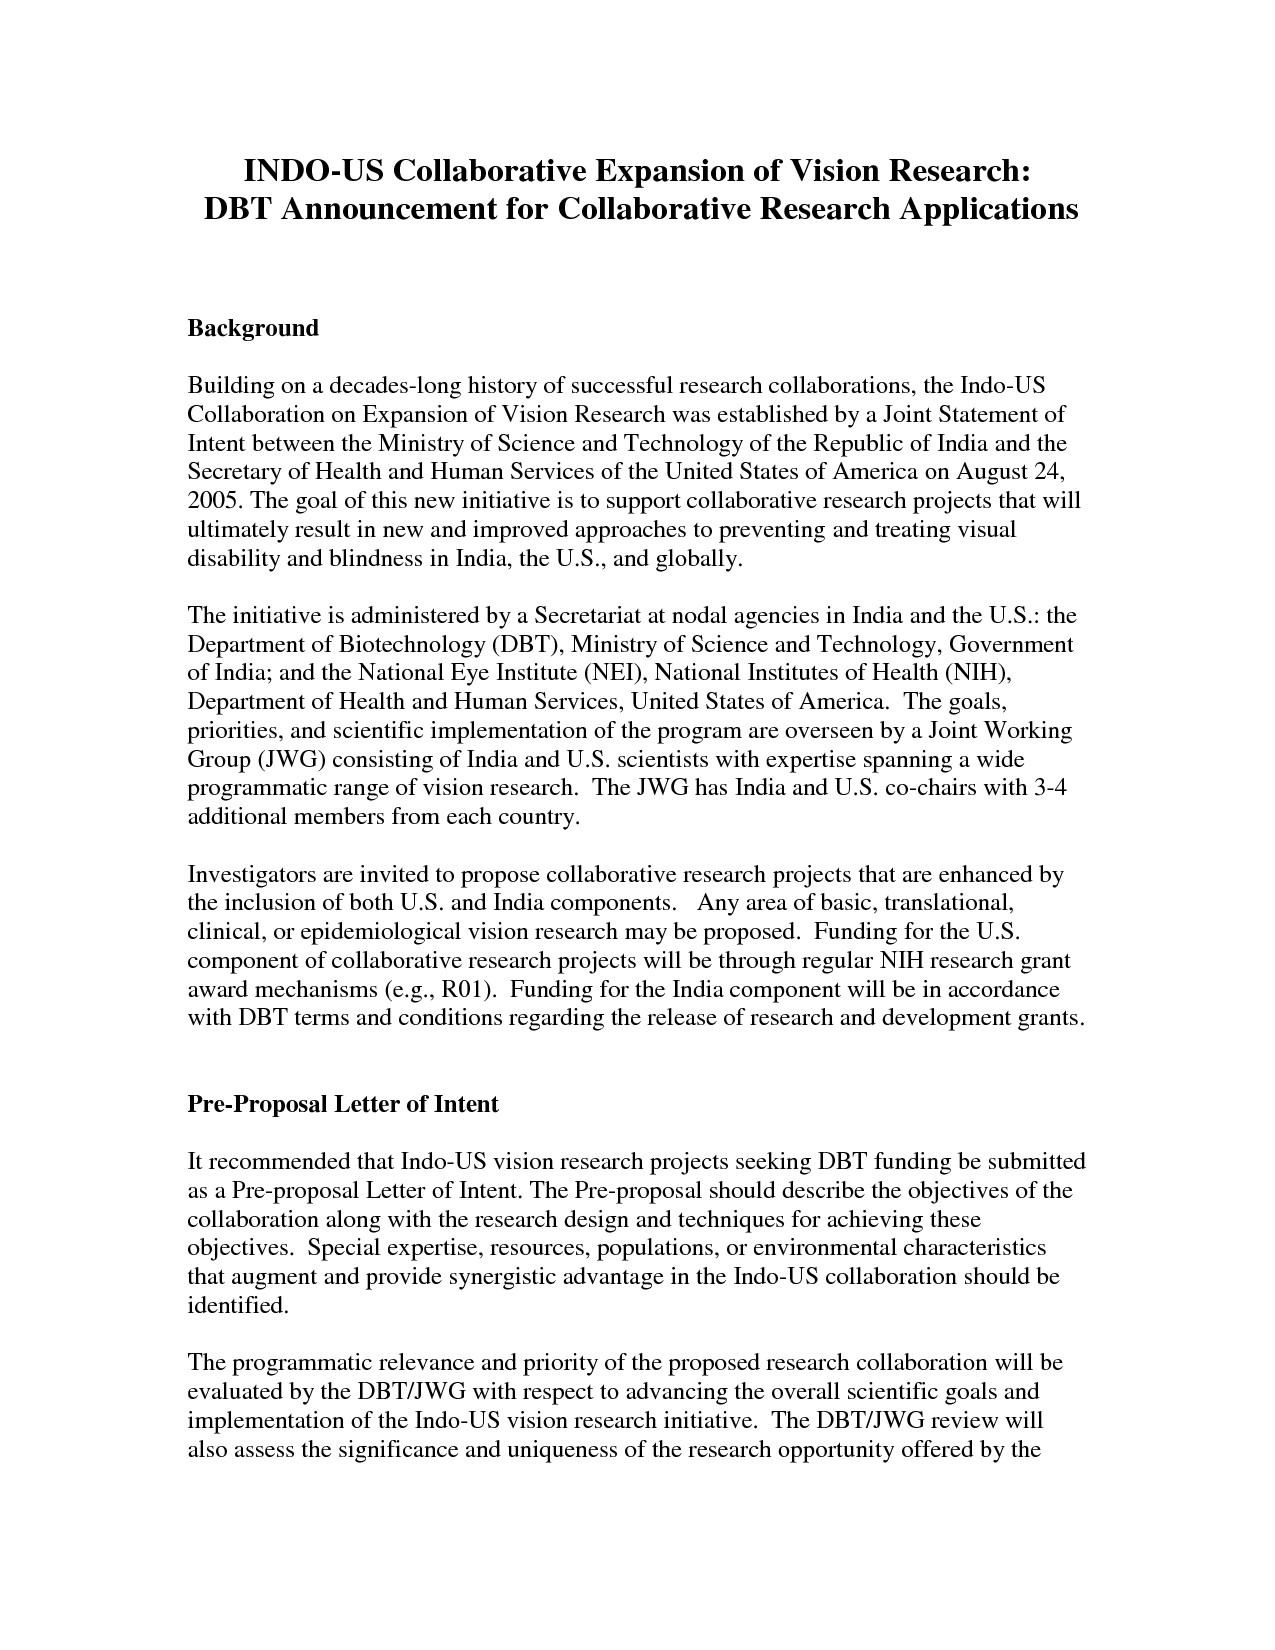 american phd thesis database Dissertations & theses @ stanford university [electronic resource] imprint [sl] : umi access database thesis reference material collection beginning date 1990 title variation current research at stanford university also known as: stanford dissertations former title current research.